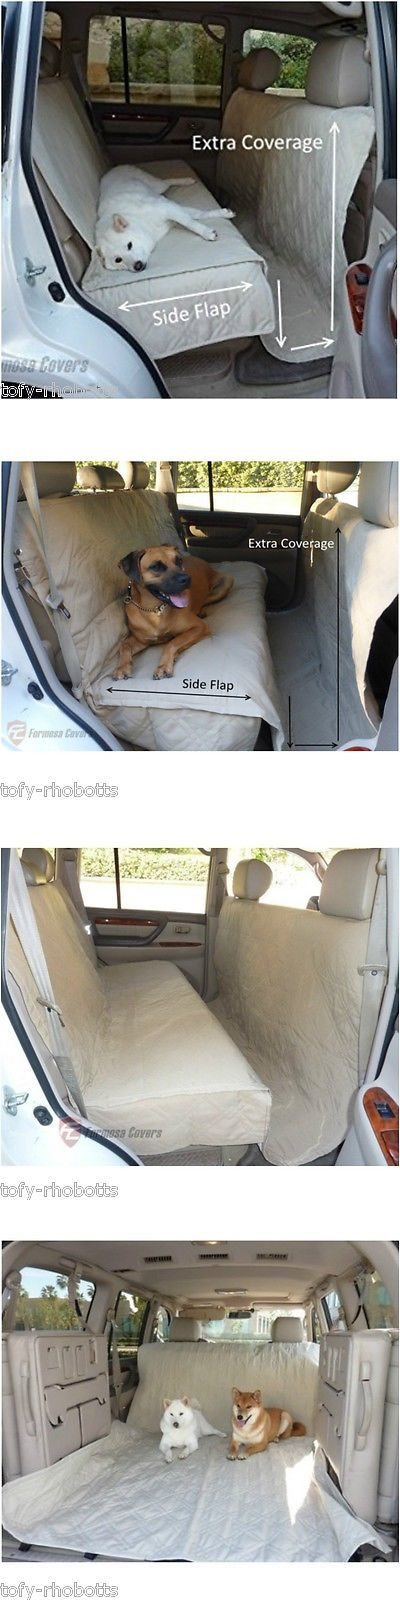 Car Seat Covers 117426: Extra Large Vehicle Dog Back Seat Cover Zone Car Travel Pet Barrier Van Mat Pads -> BUY IT NOW ONLY: $59.99 on eBay!